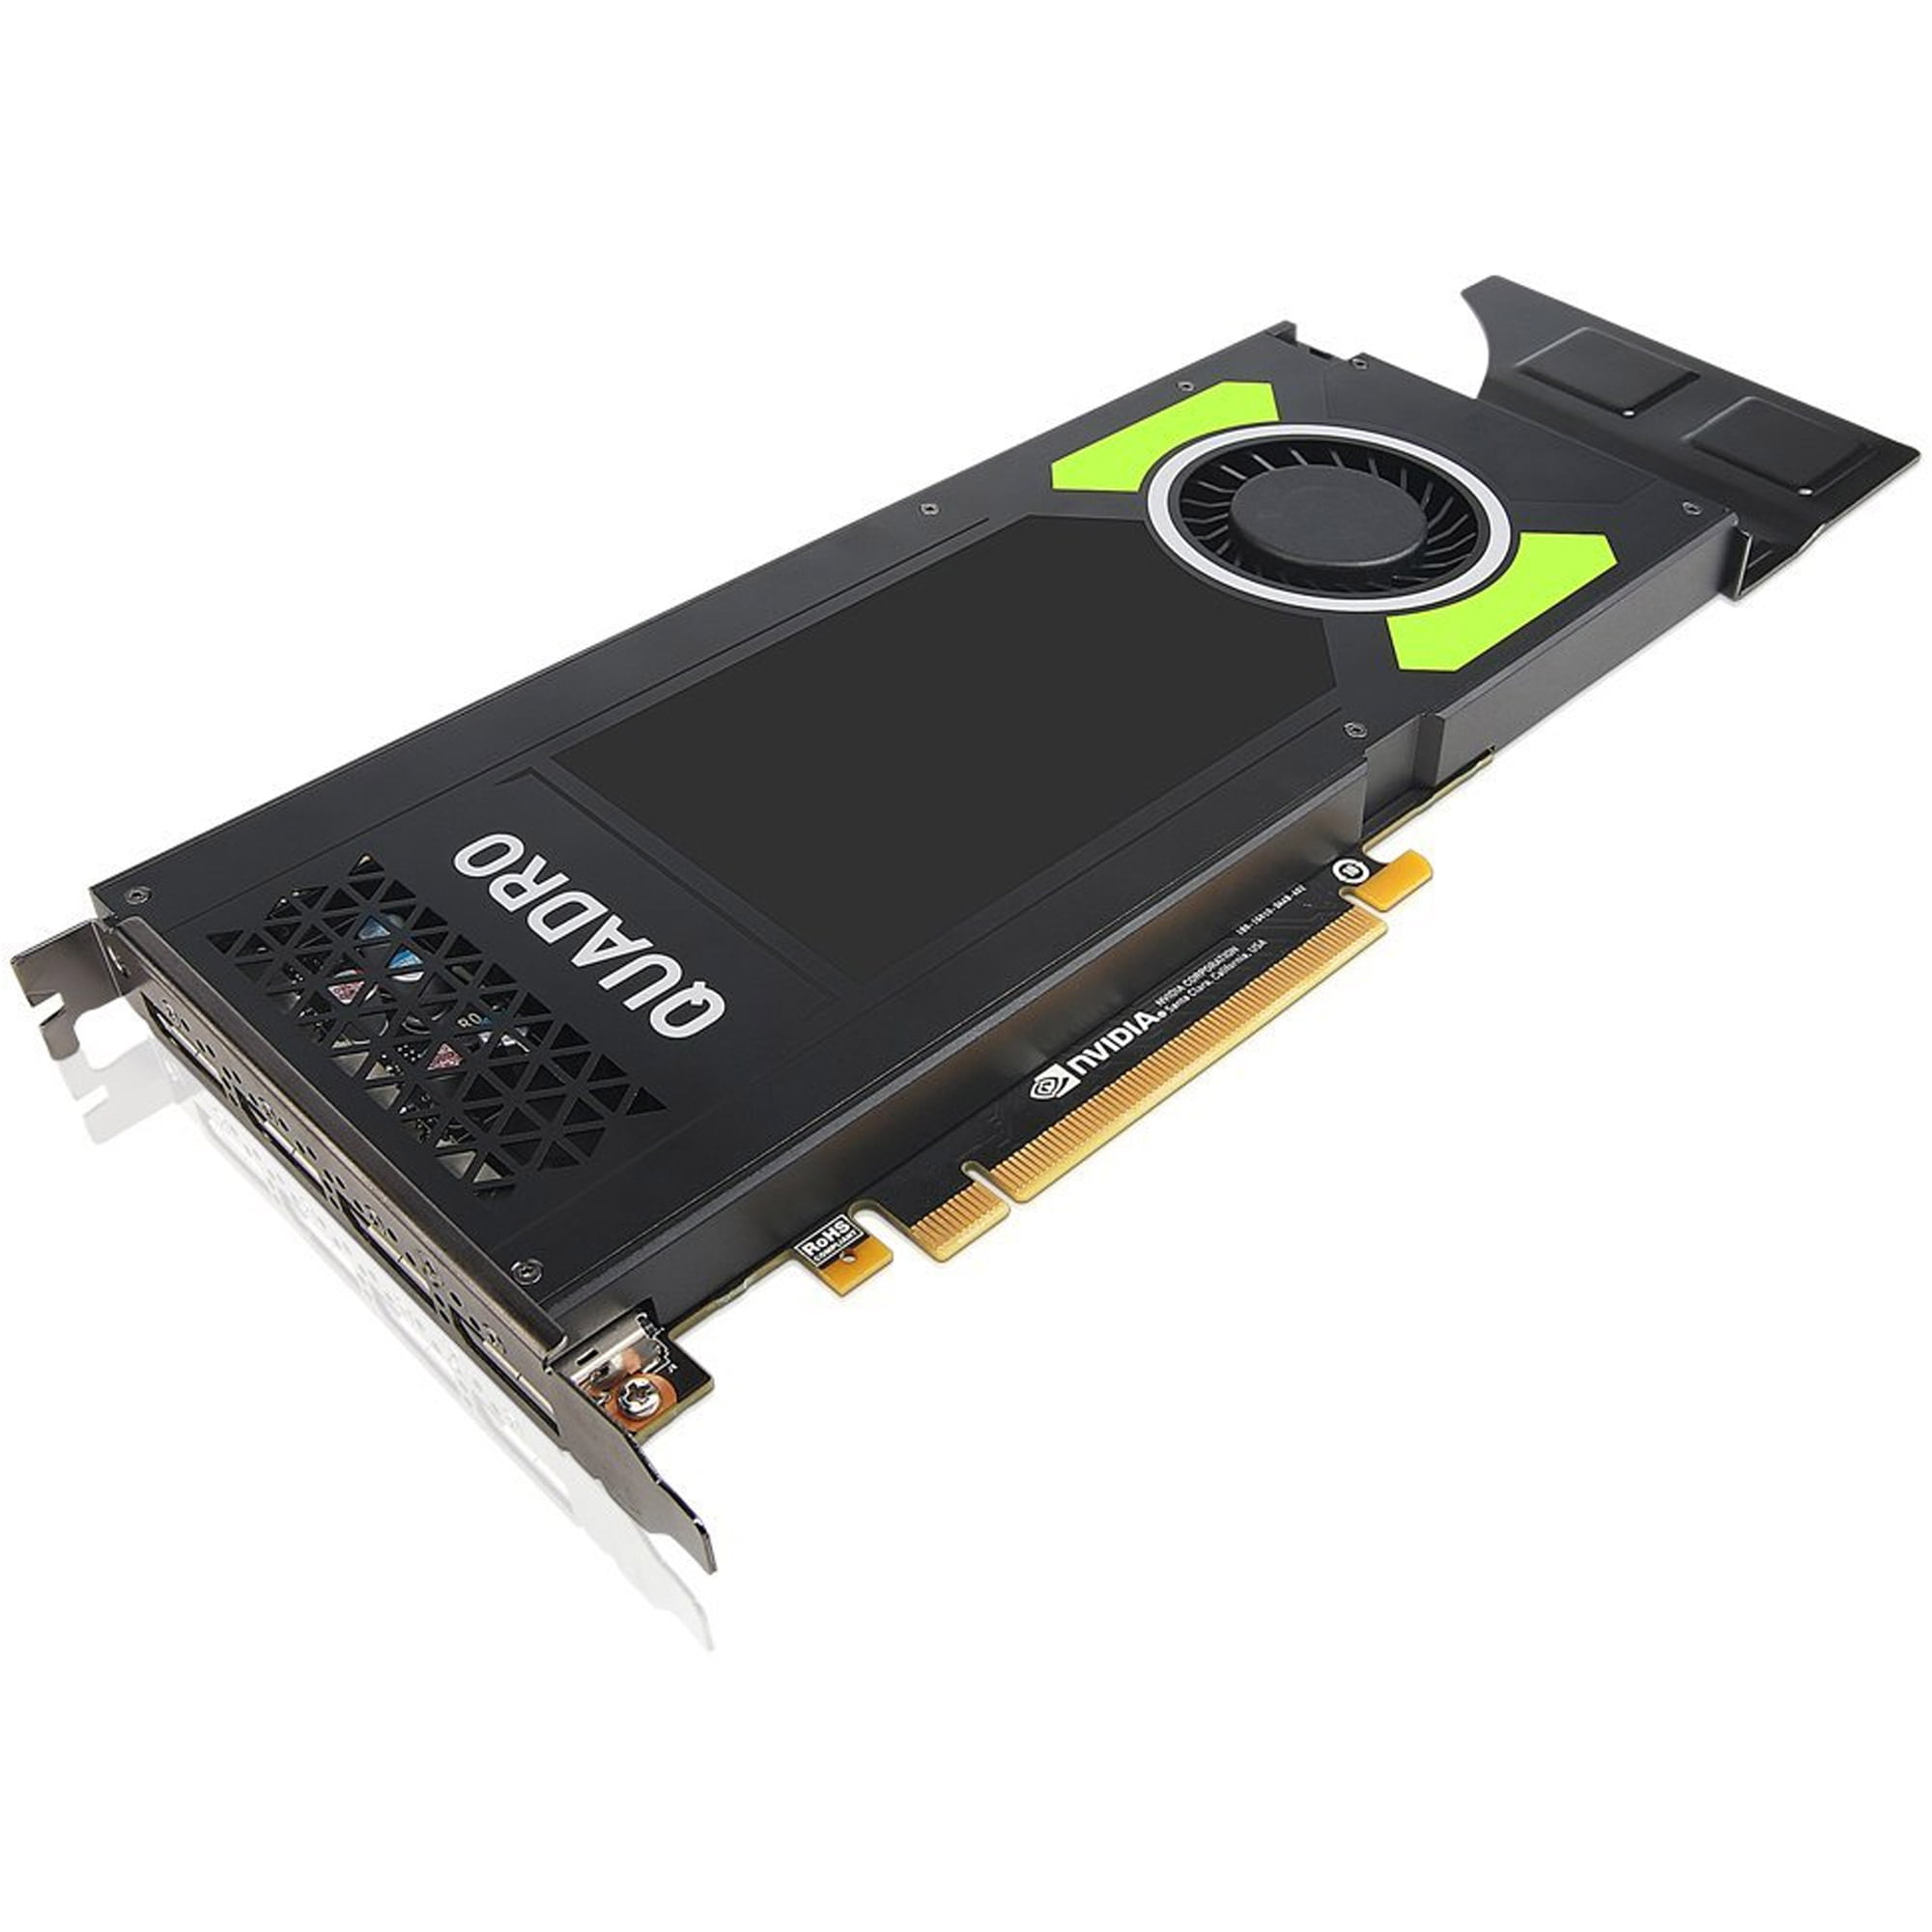 Lenovo ThinkStation Nvidia Quadro P4000 8GB GDDR5 DP * 4 Graphics Card with Short Extender by NVIDIA